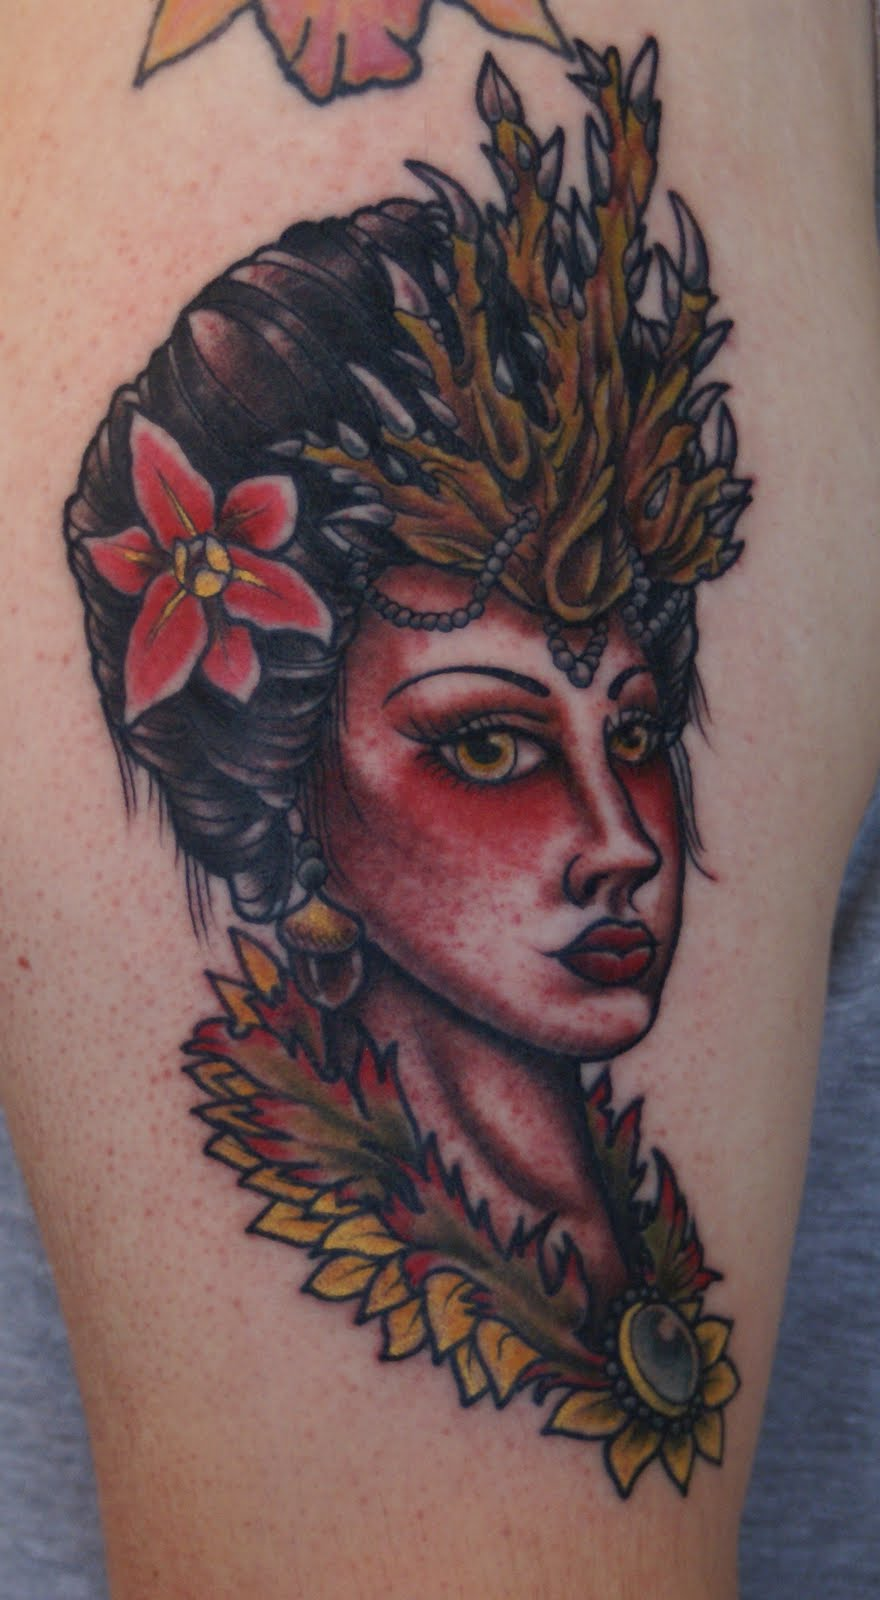 Mother Nature Tattoos: Ryan Cullen @ Classic Tattoos: Mother Nature Tattoo